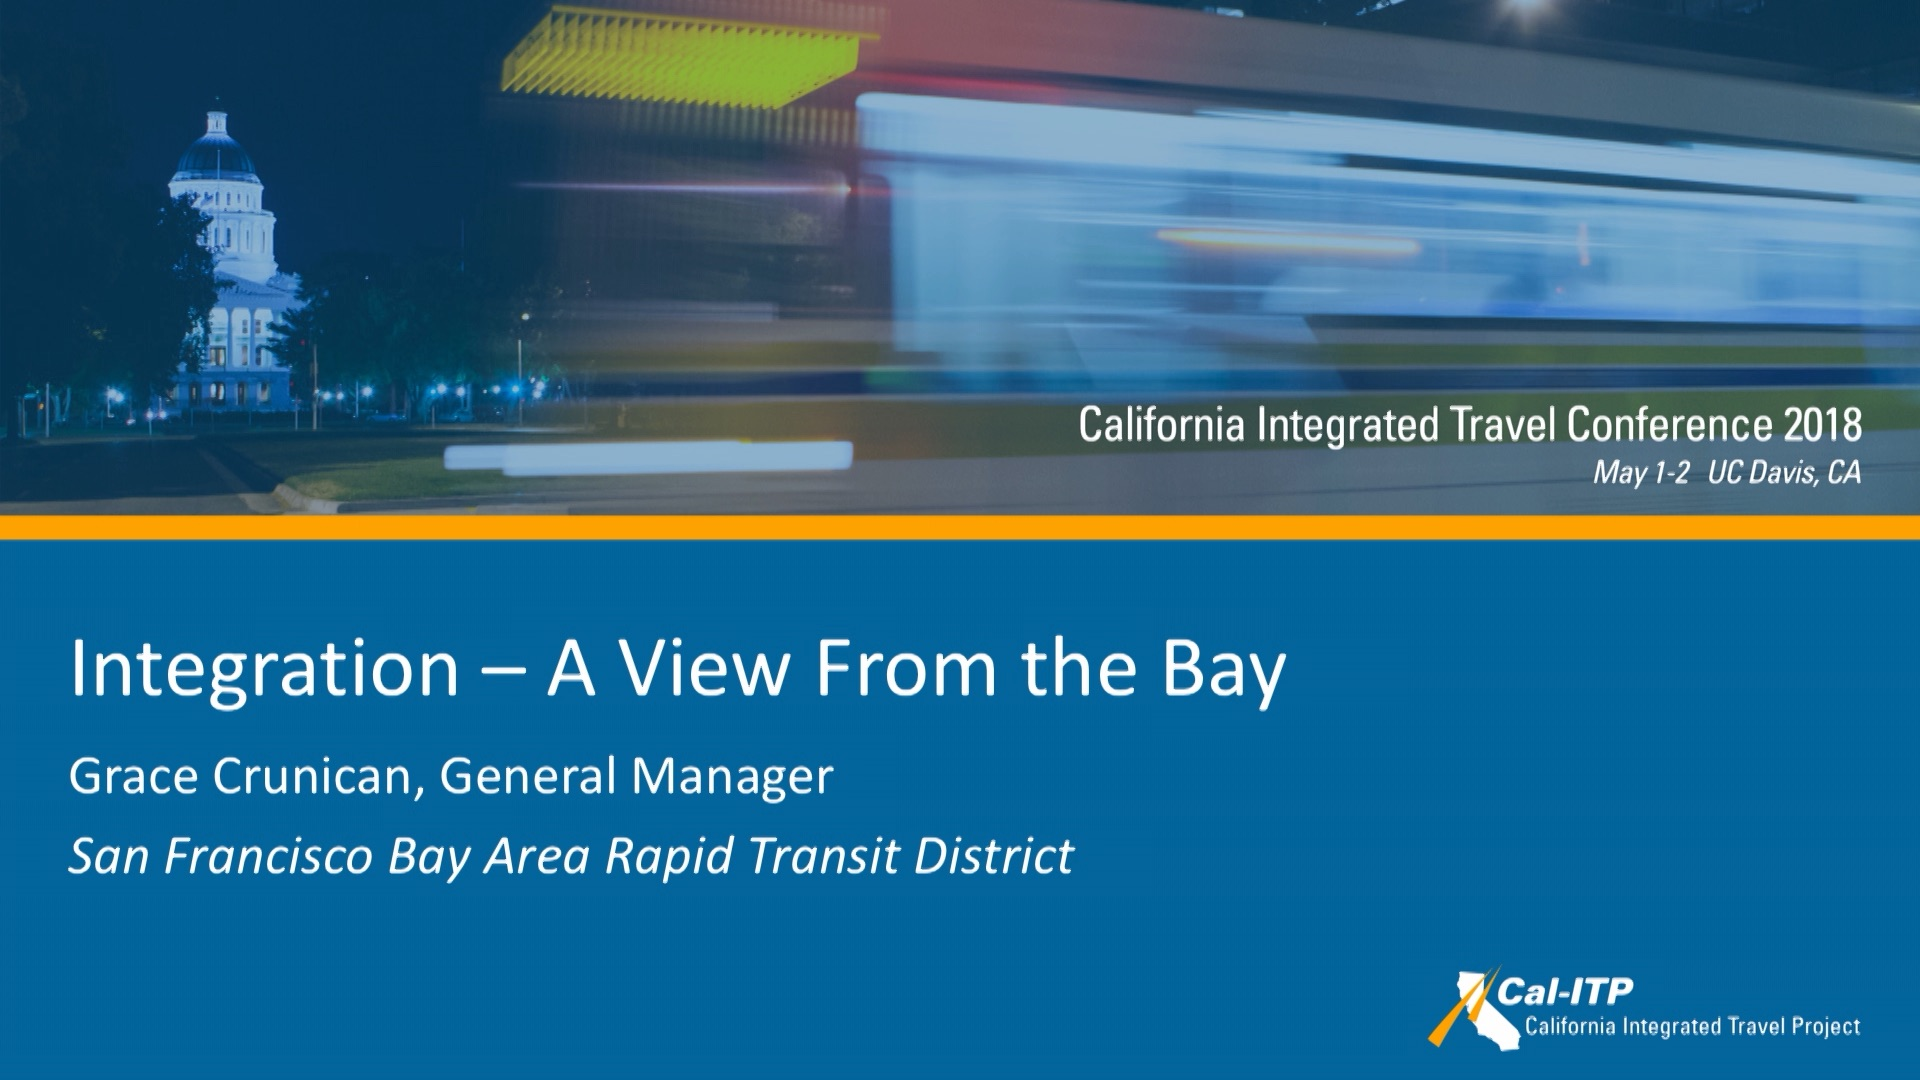 5. Integration - A View from the Bay